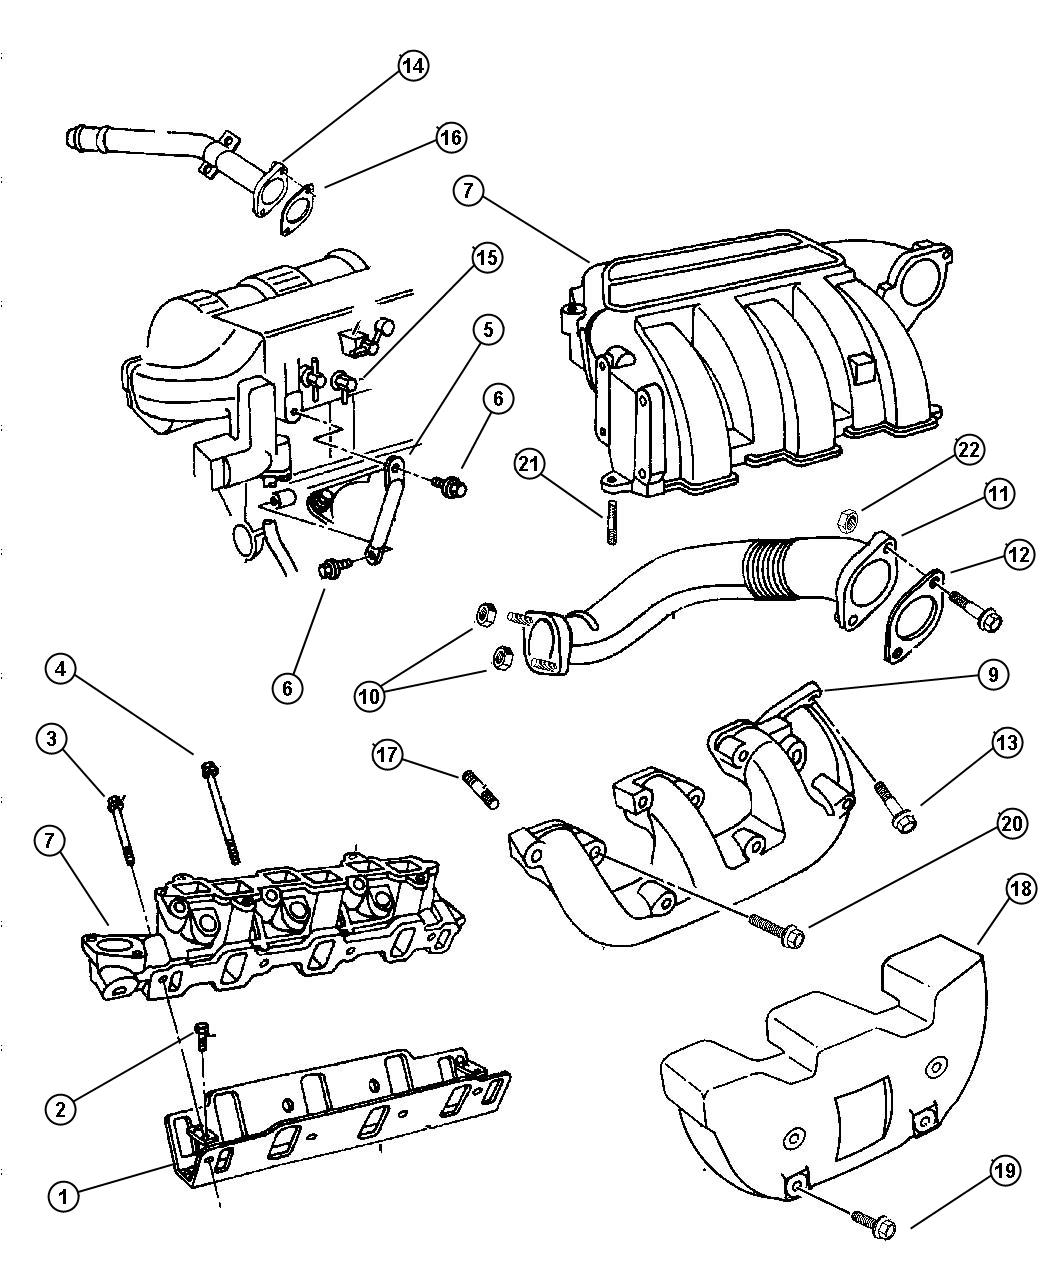 Dodge Caravan 3 3 L Engine Diagram